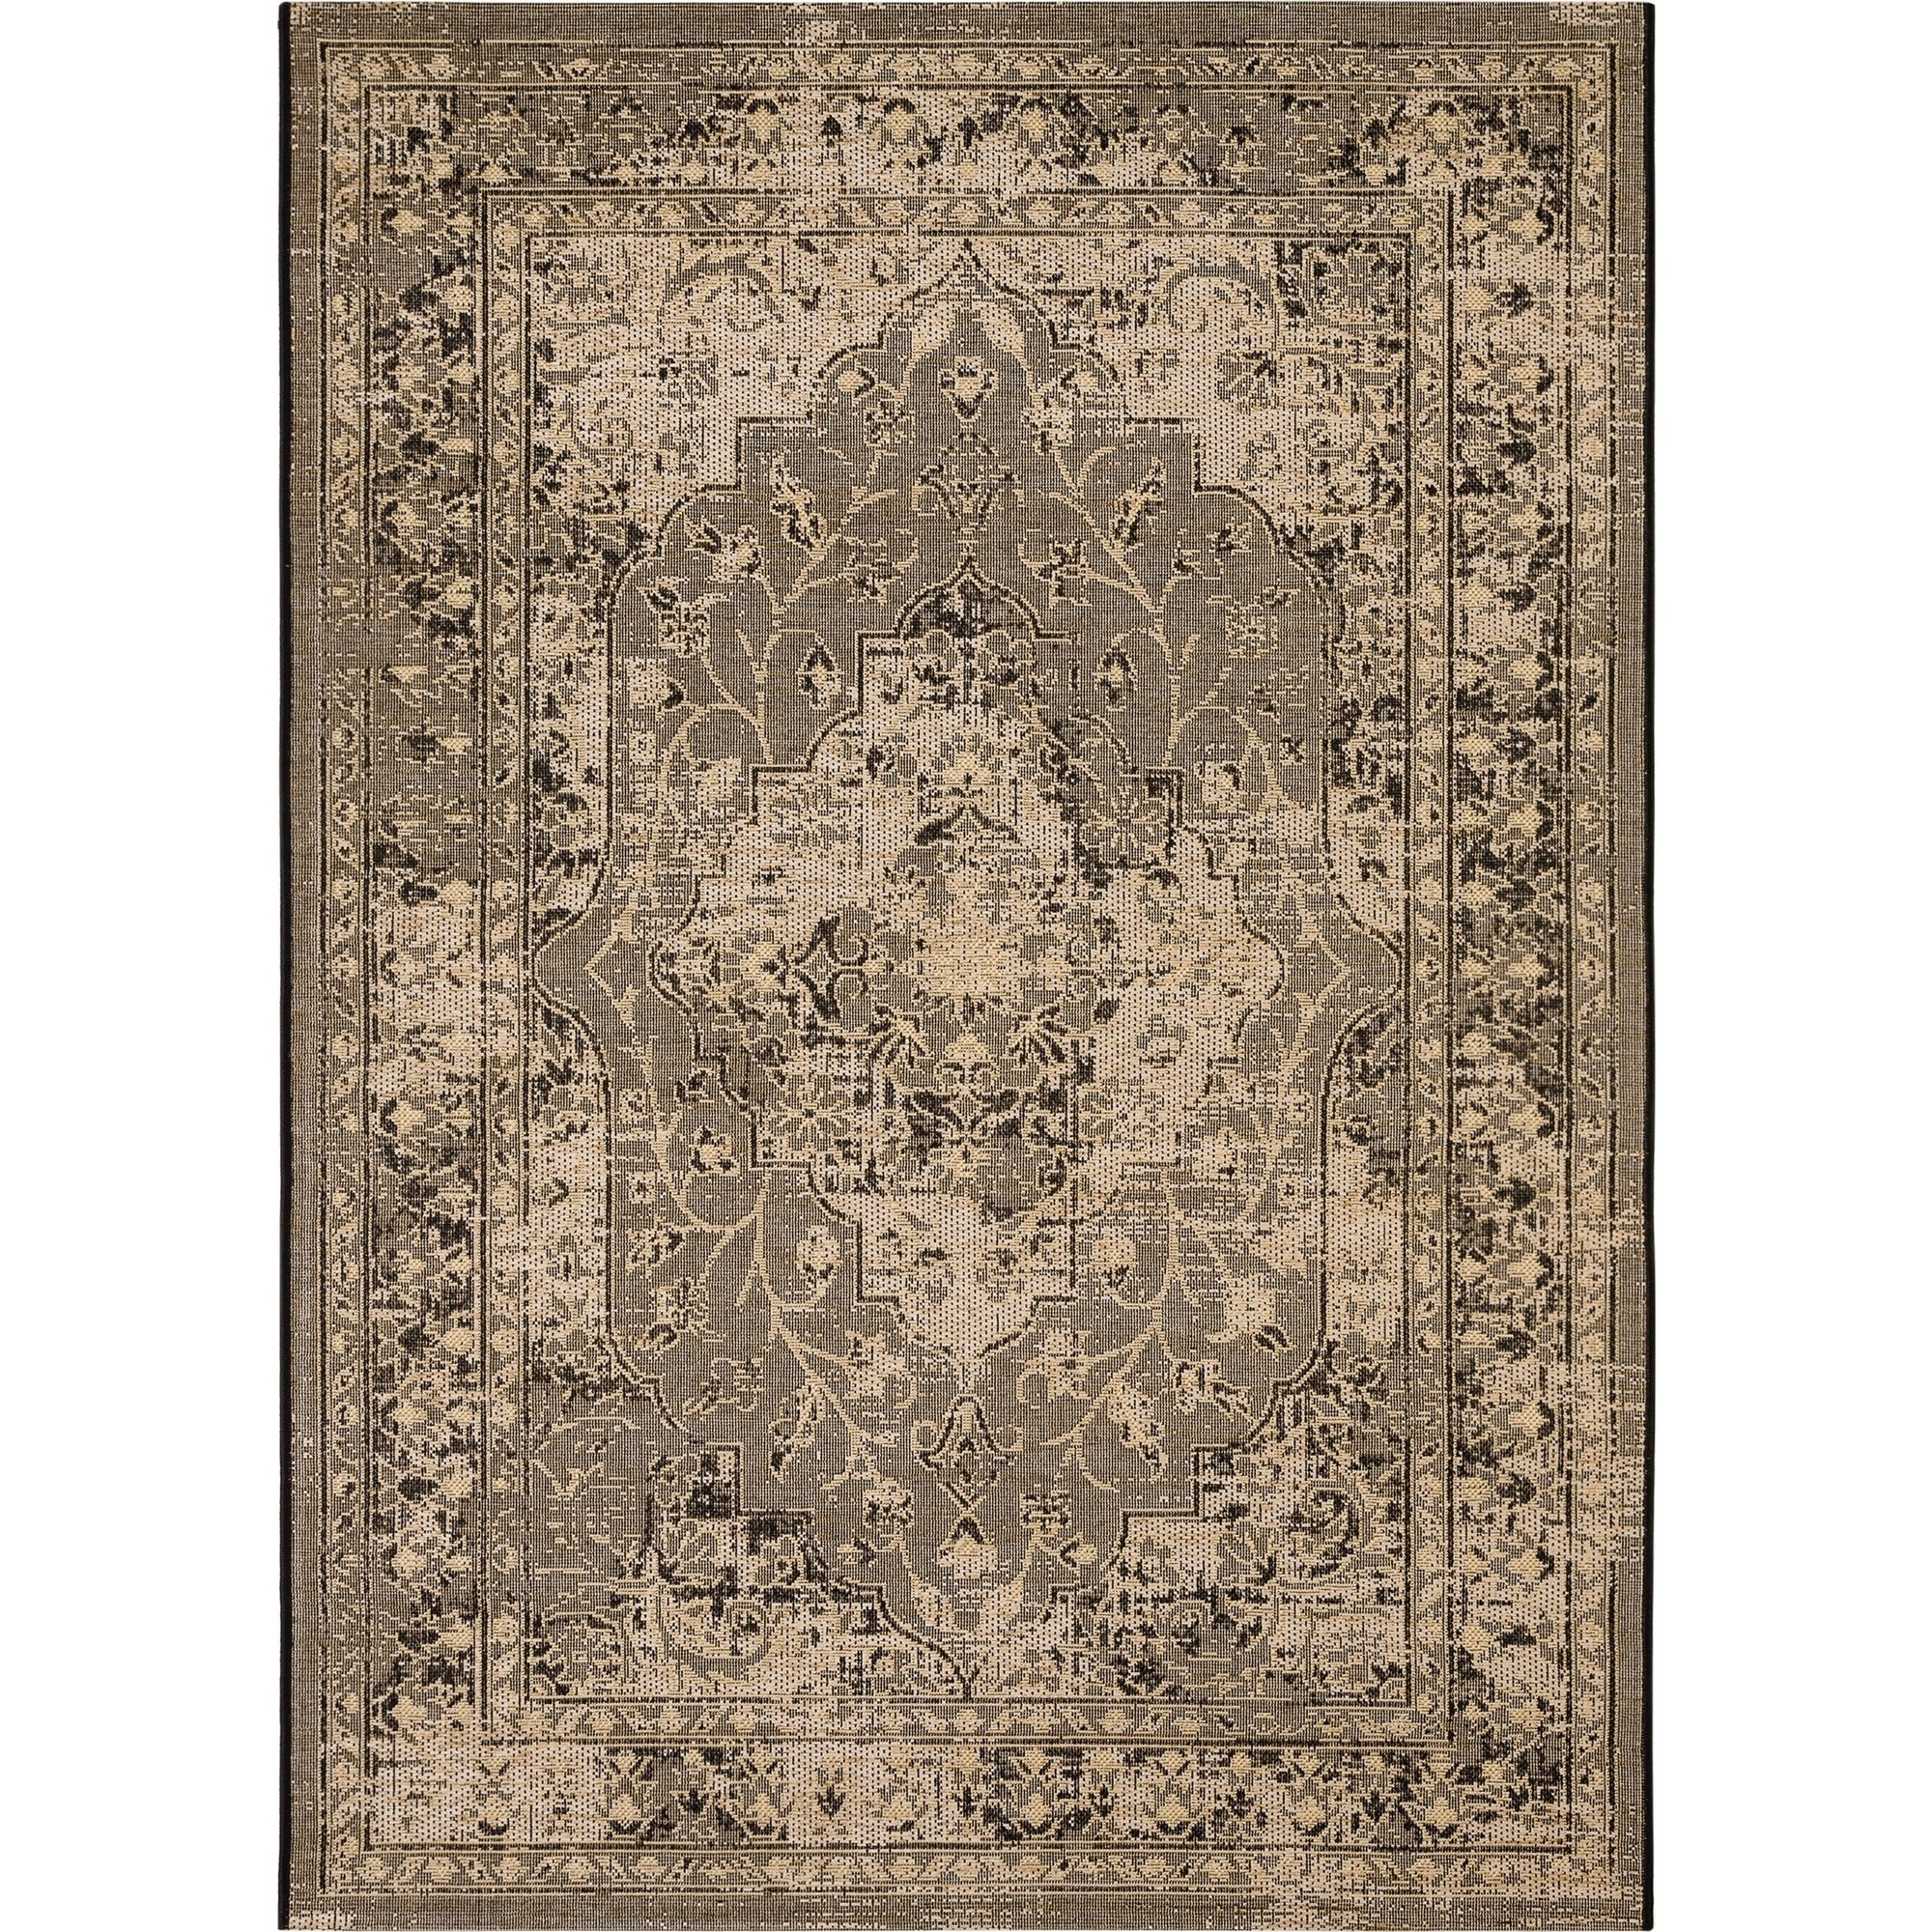 Safavieh Palazzo Collection PAL128-1621 Light Grey and Grey Area Rug (8' x 11') by Safavieh